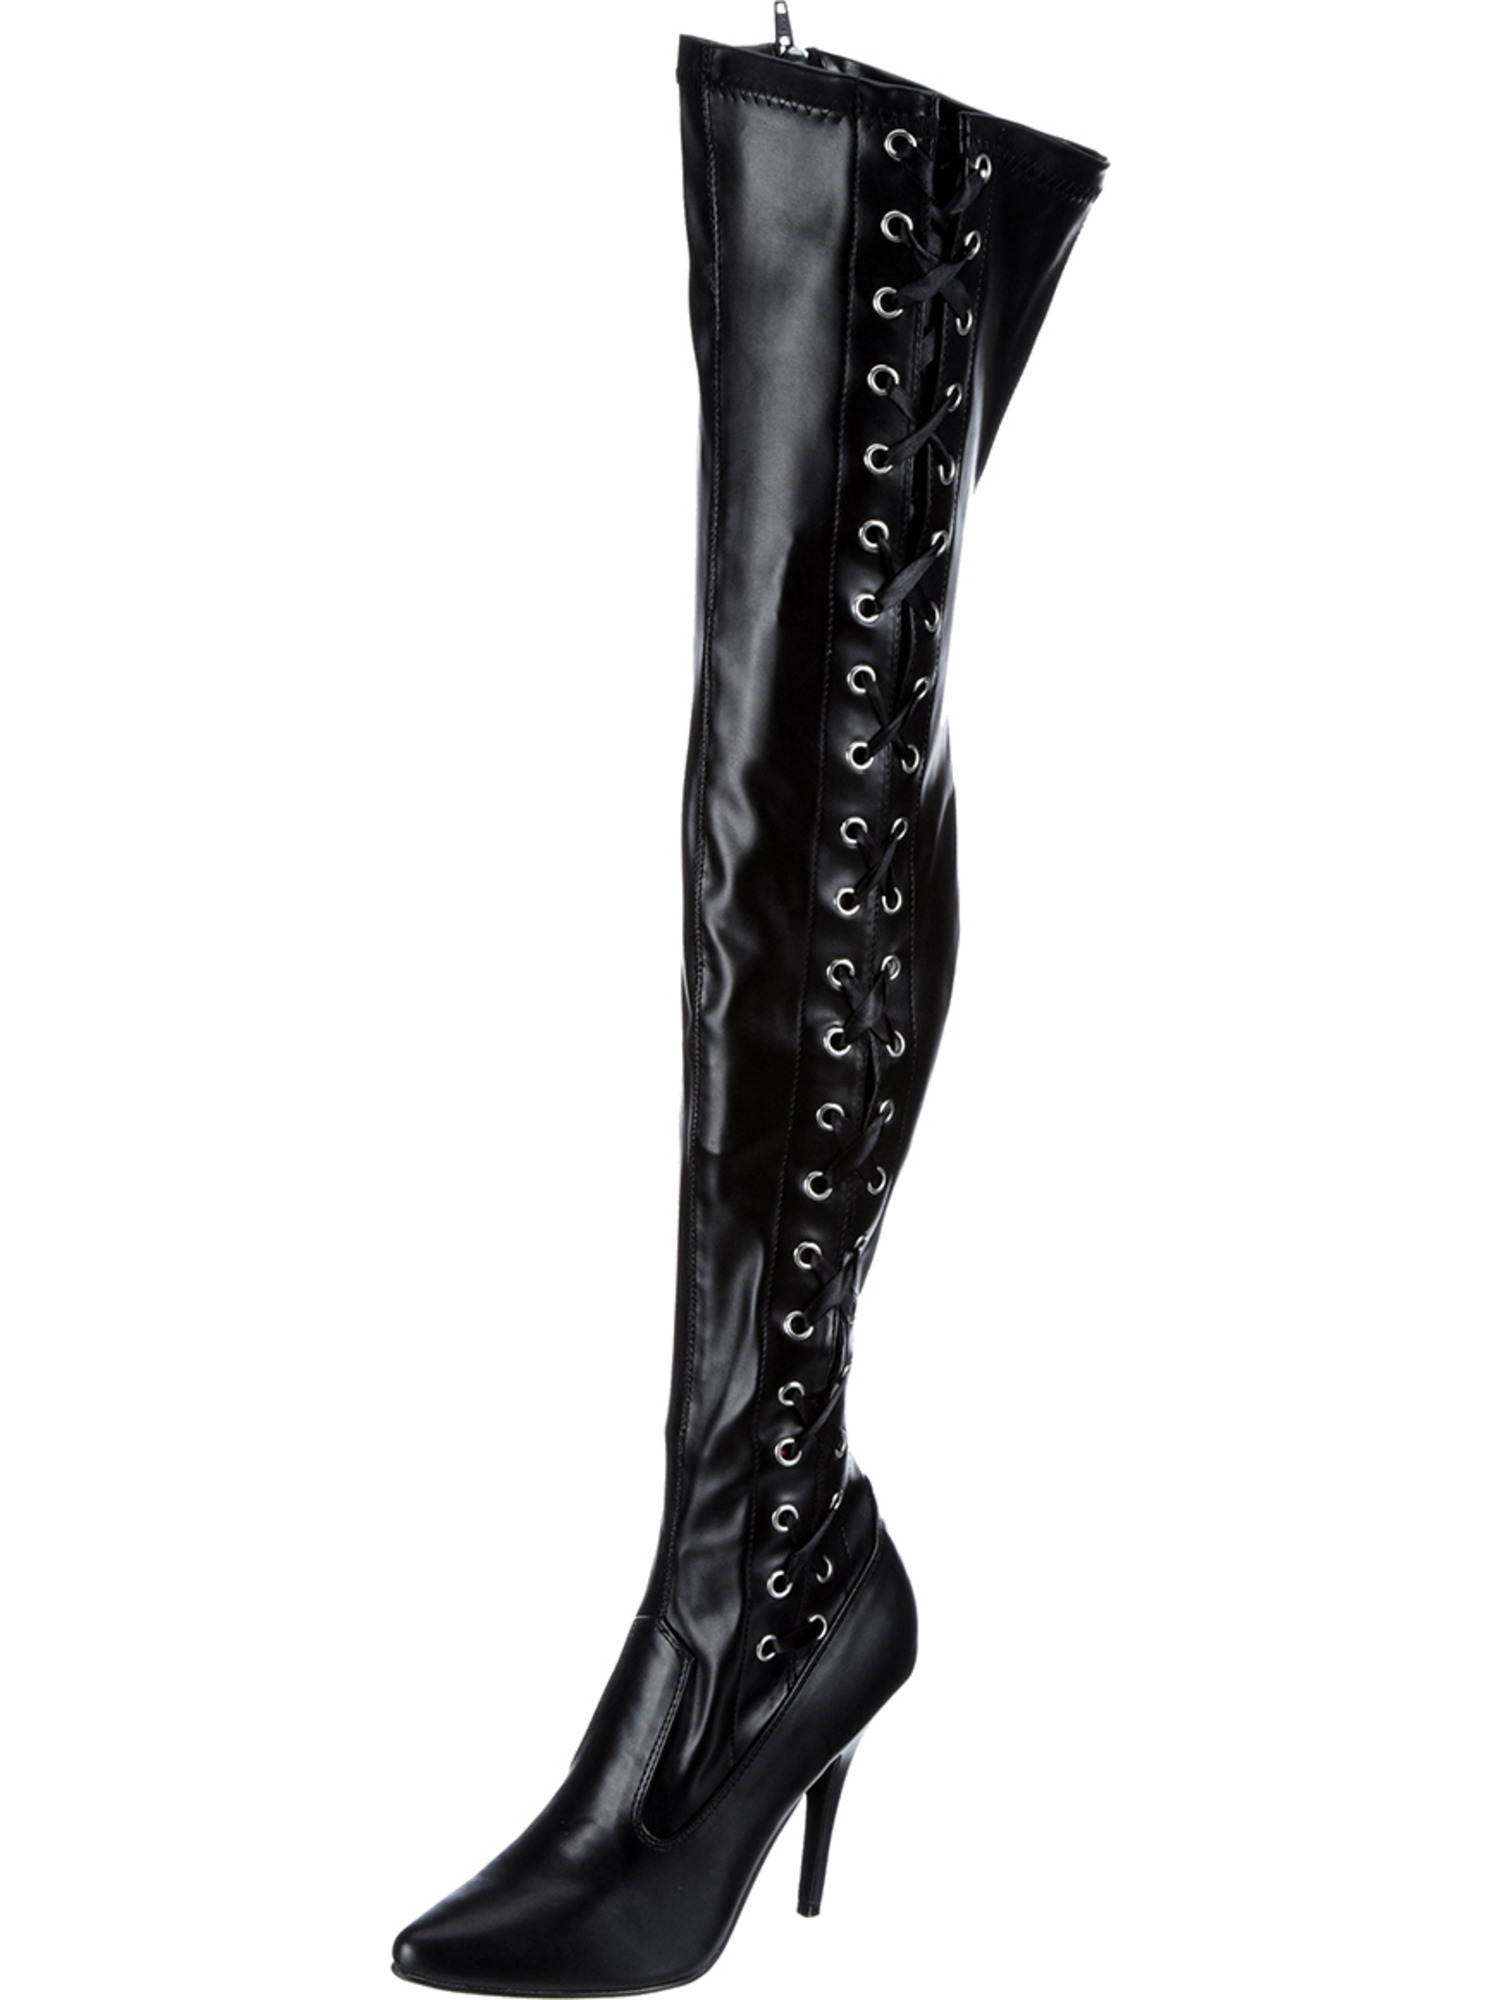 Womens 5 Inch Heel Boots Side Lace Up Thigh High Boots Pointed Toe Stretch